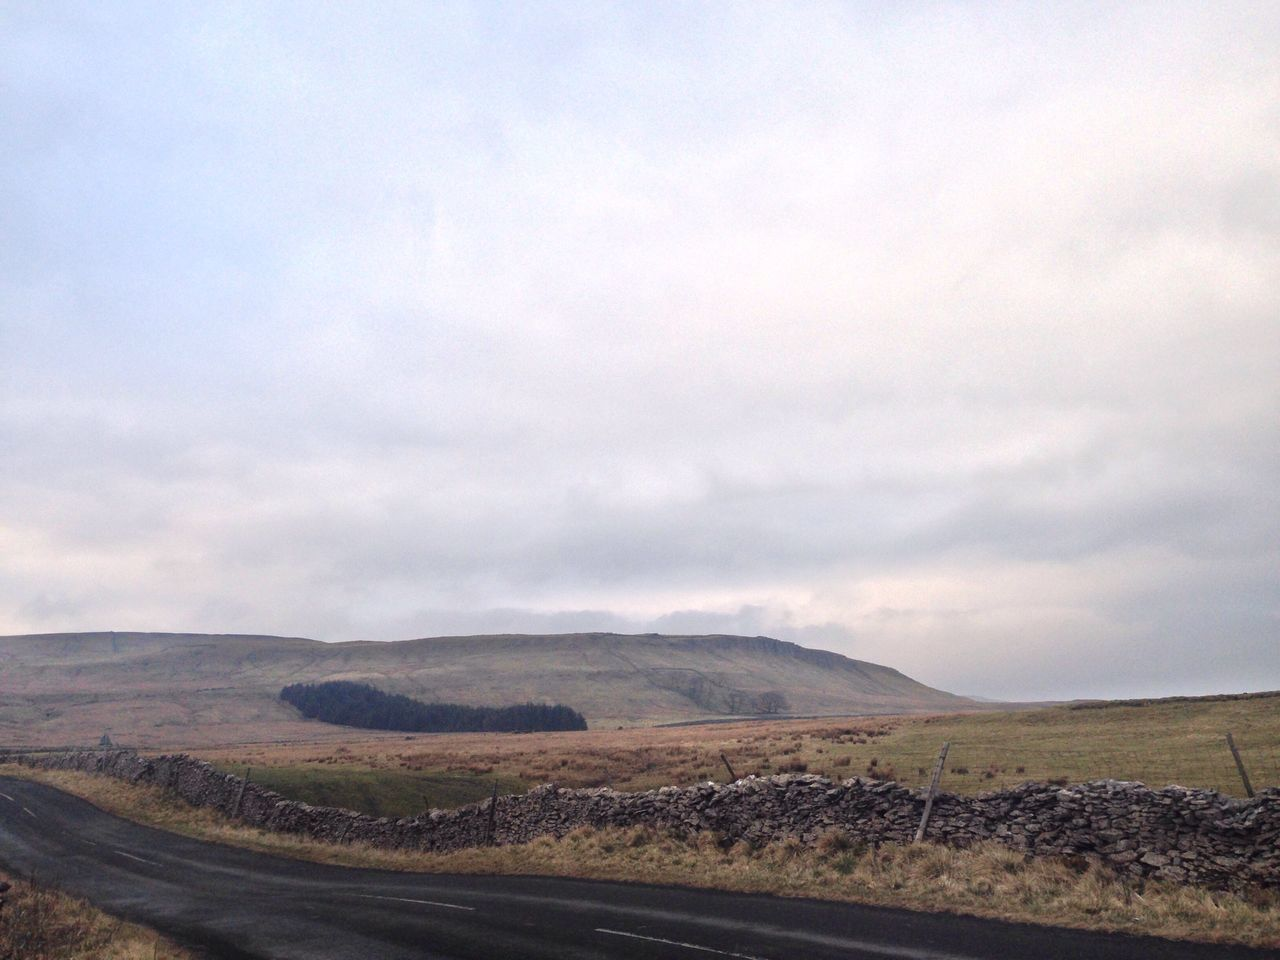 Countryside Country Road Yorkshire Yorkshire Dales North Yorkshire Moors Dales Landscape Nature Dry Stone Wall